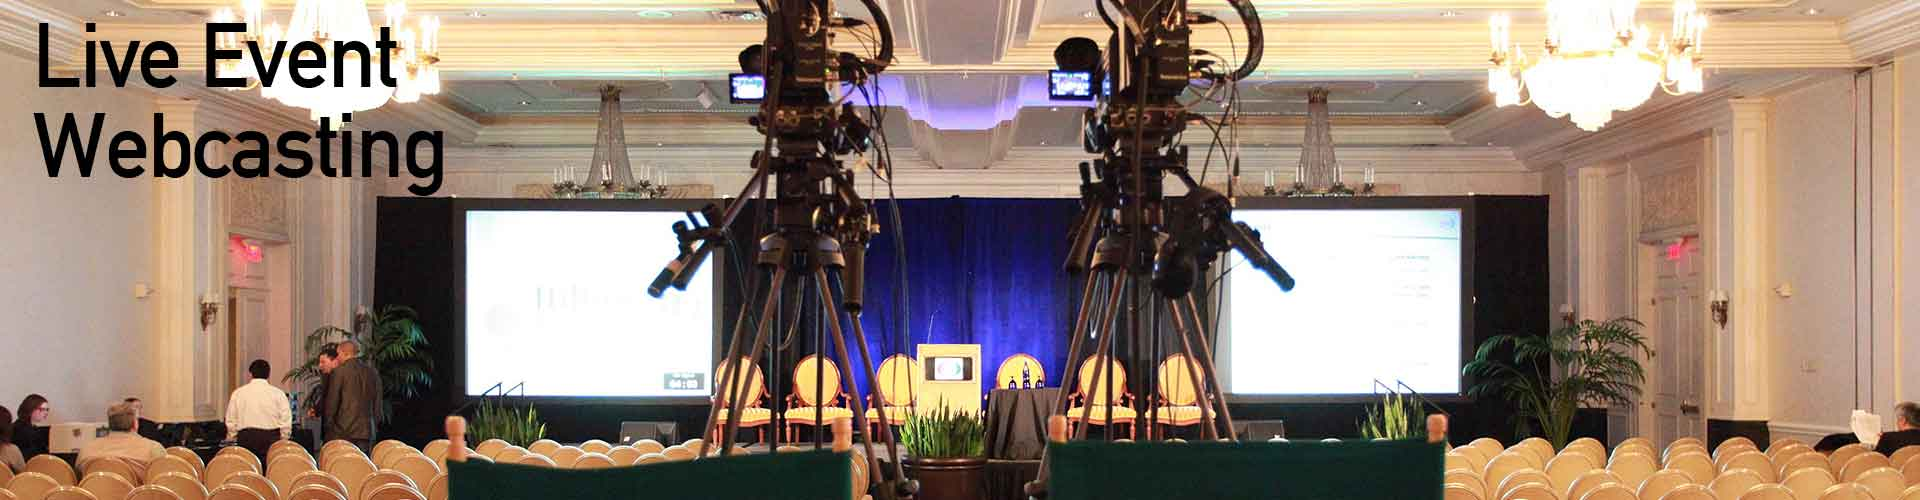 live, webcast, multicamera, location production, live presentation, town hall meeting,